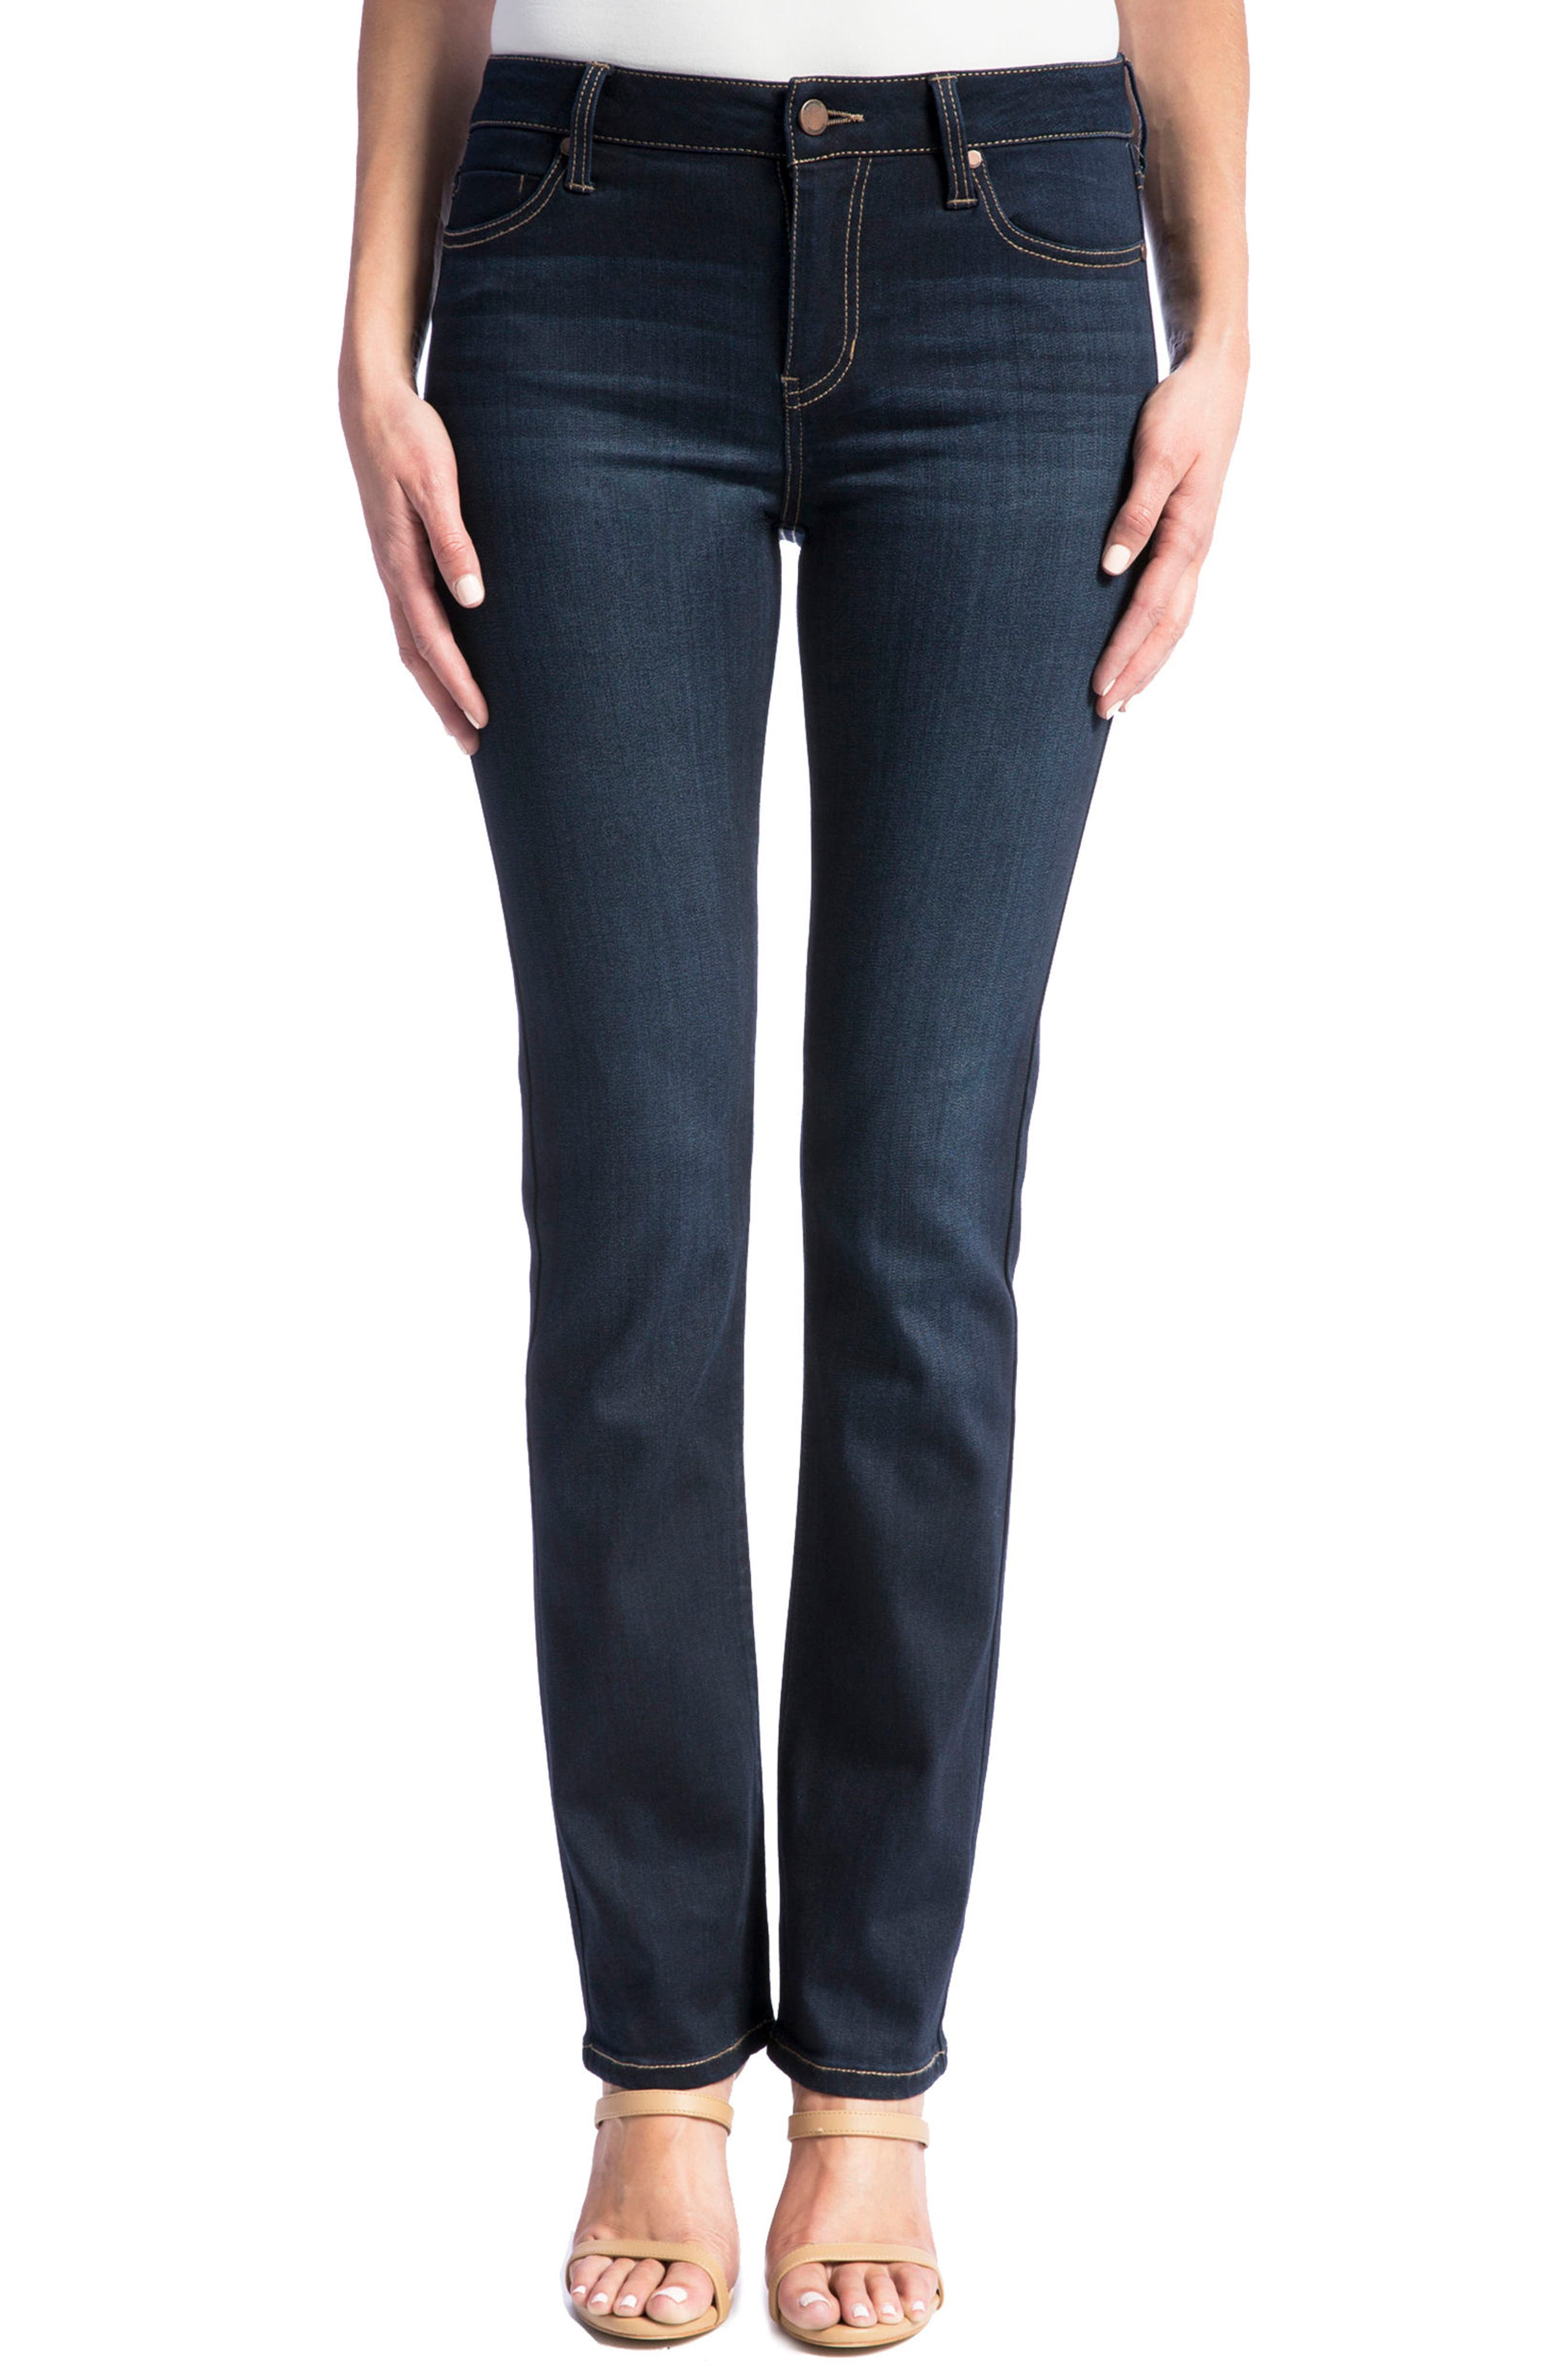 LIVERPOOL JEANS COMPANY Liverpool Jeans Co. Sadie Stretch Straight Leg Jeans